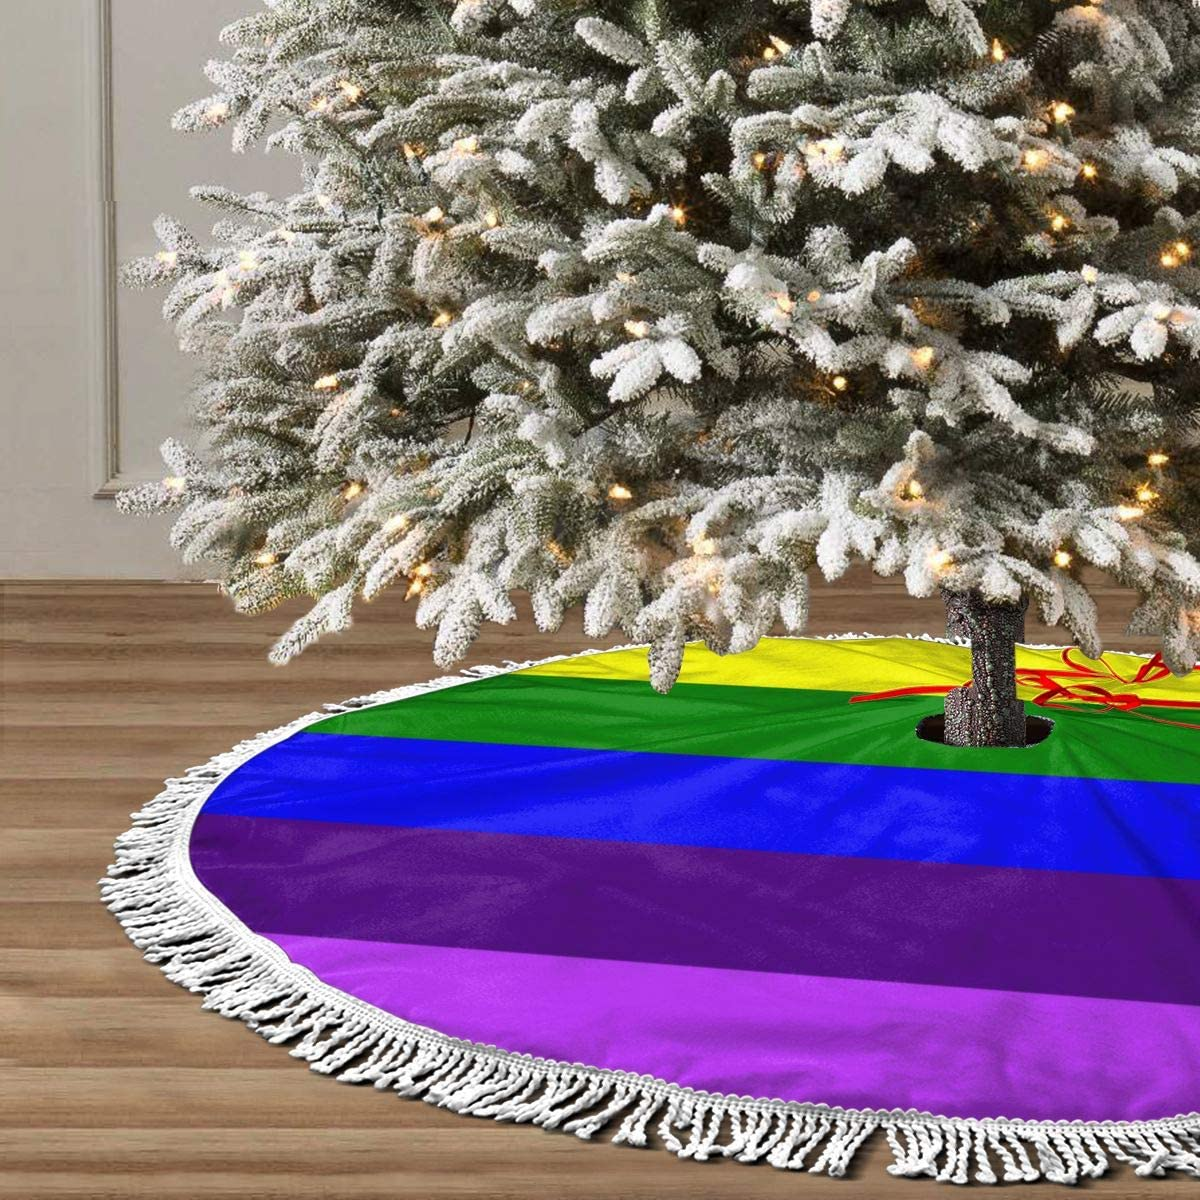 """GHYGTY Christmas Tree Skirt 36"""" Inch LGBT Gay Pride Flag Xmas Tree Skirt Mat with White Tassel for Party Holiday, Tree Skirt Christmas Decorations"""